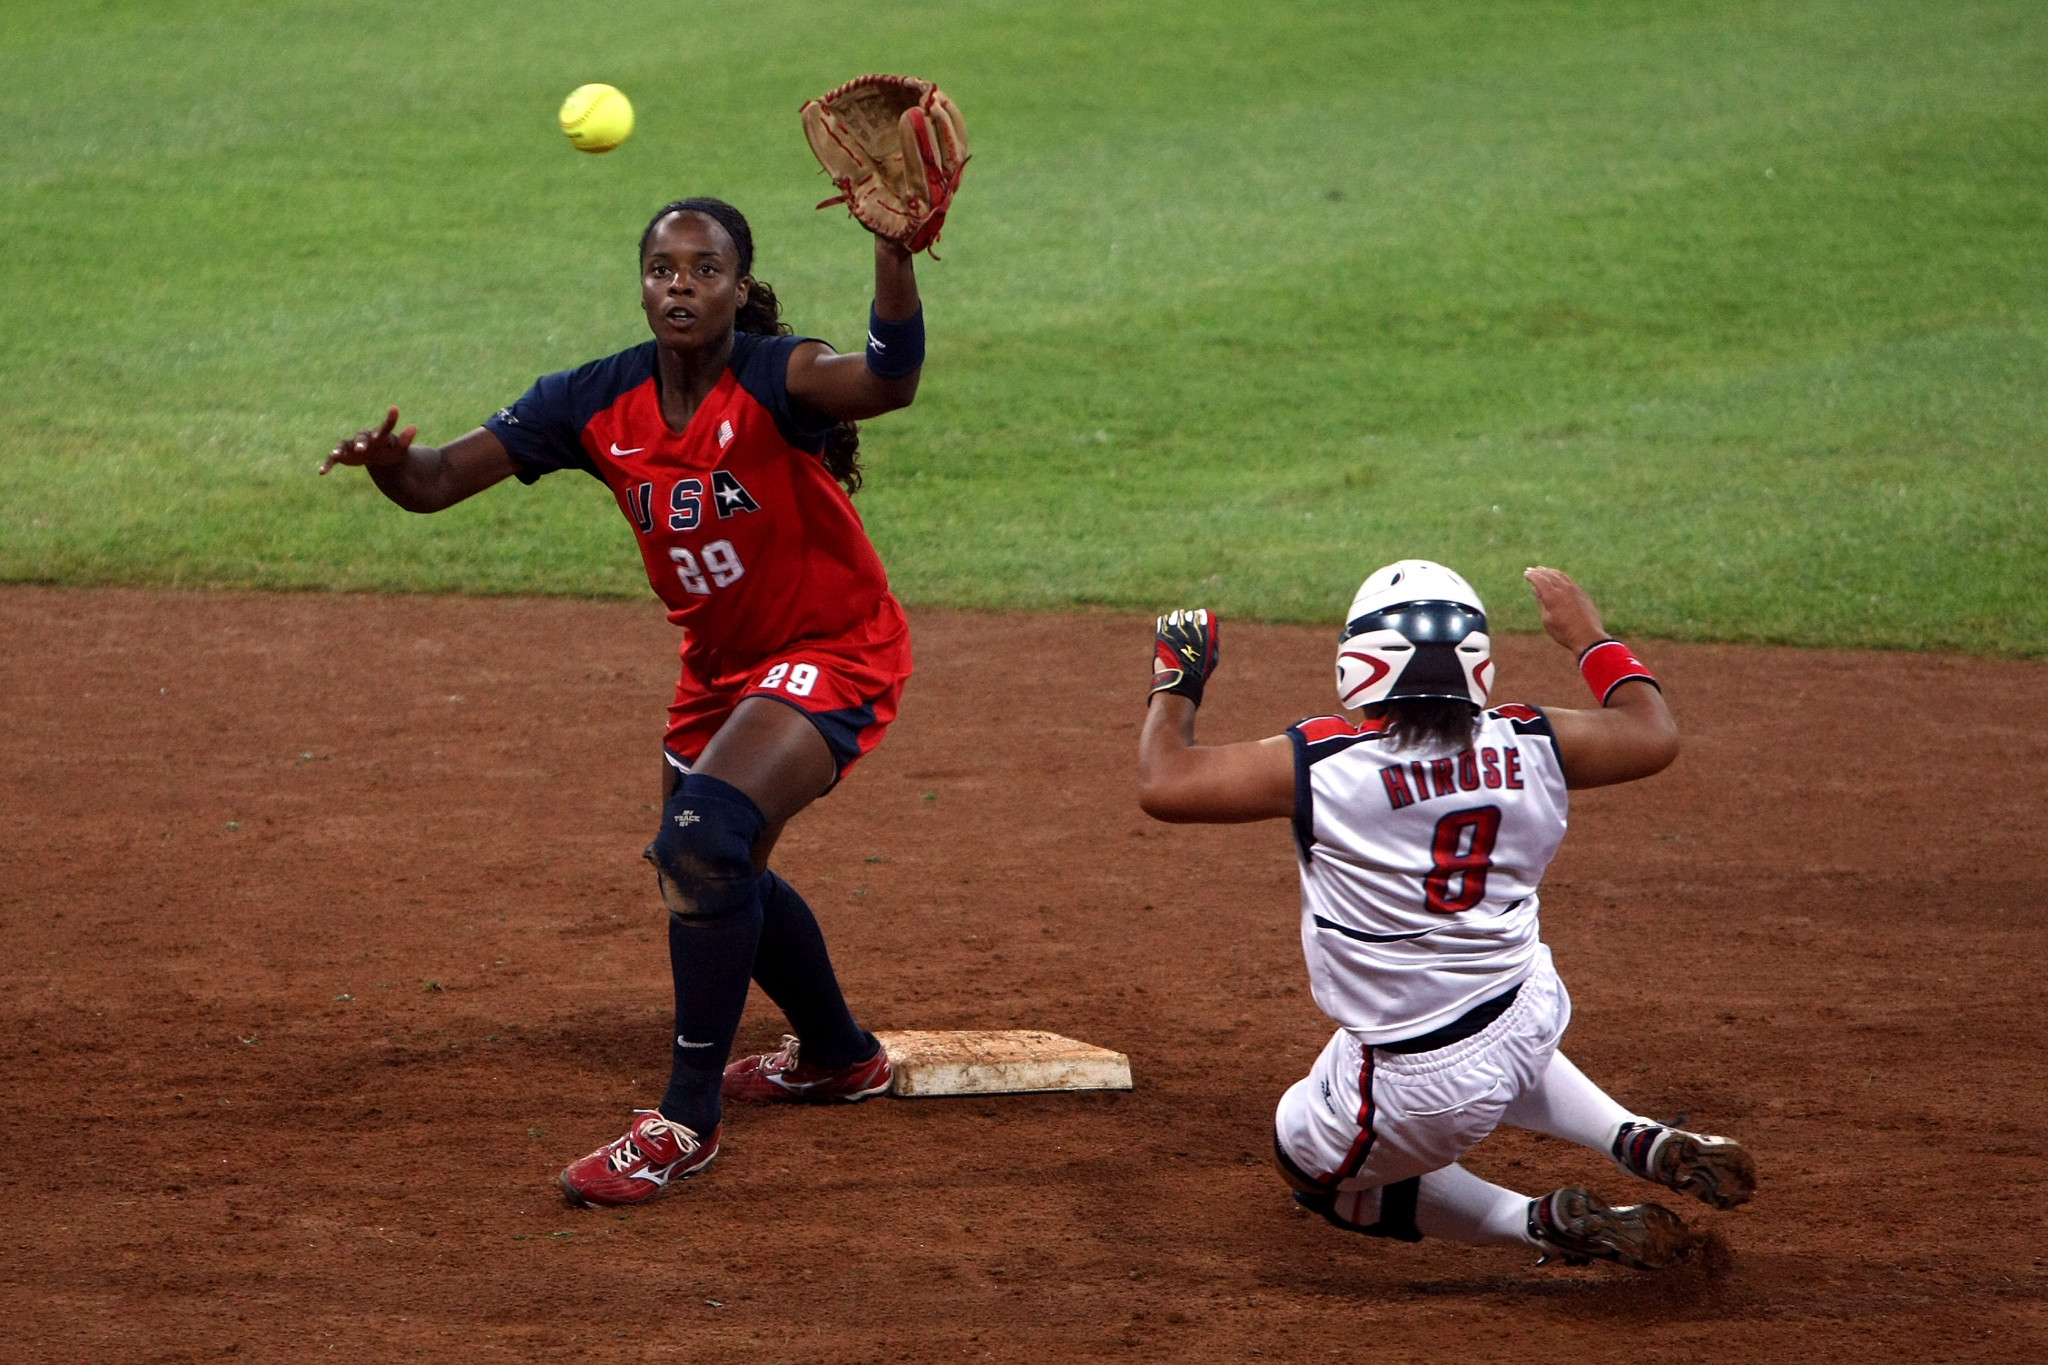 Softball is set to make its return to the Olympics at Tokyo 2020, having last appeared at Beijing 2008 ©Getty Images